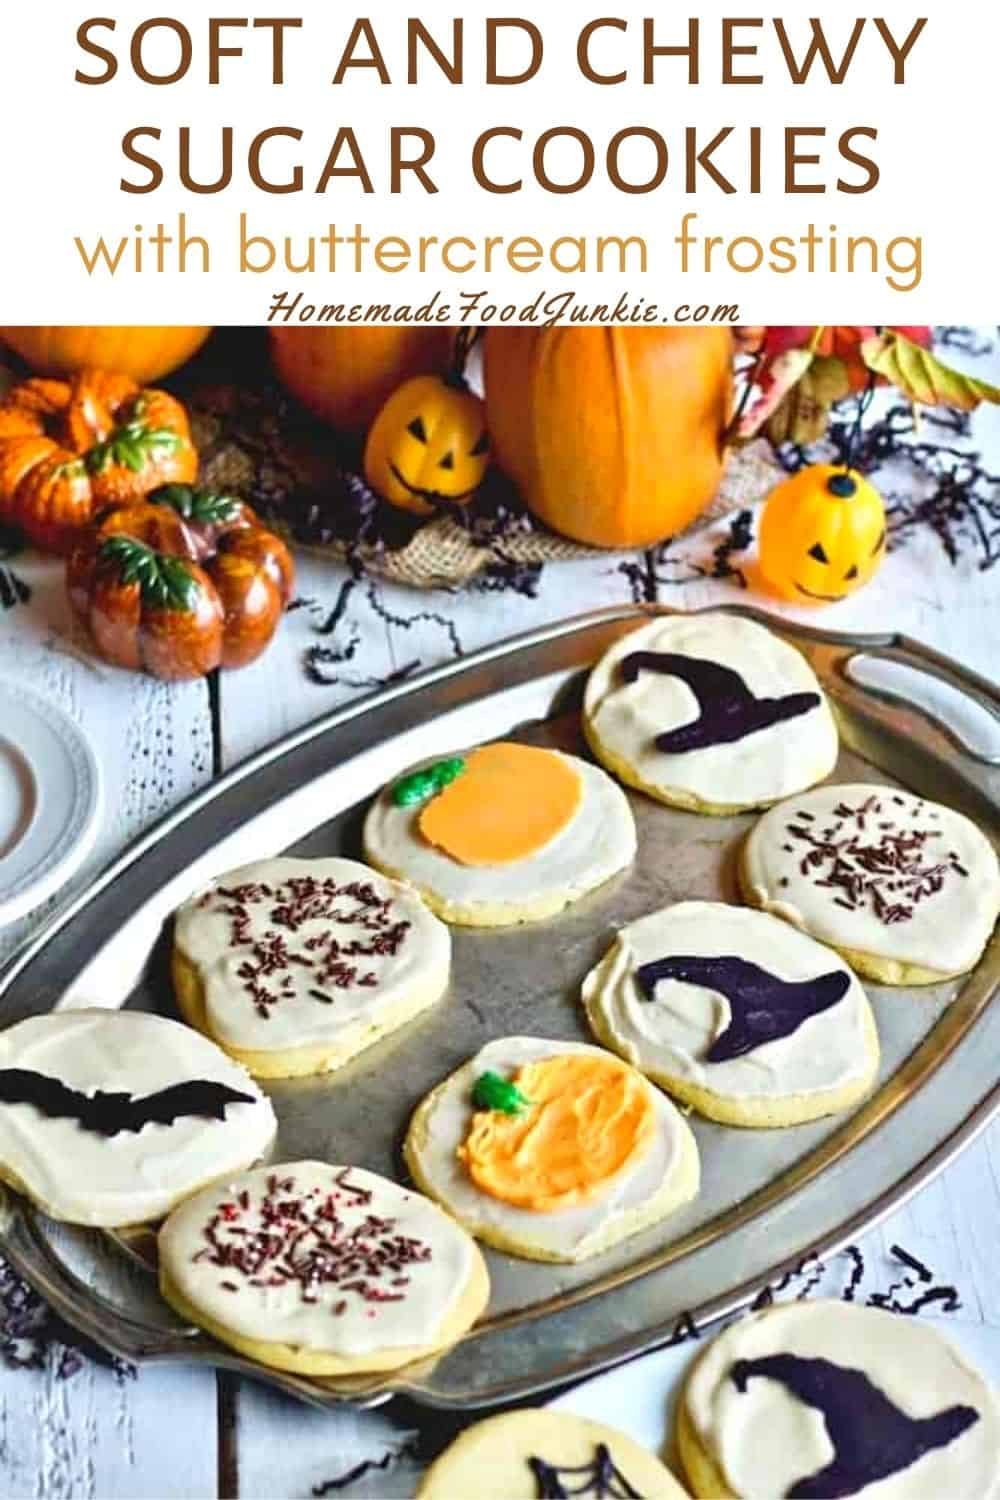 Soft And Chewy Sugar Cookies With Buttercream Frosting-Pin Image